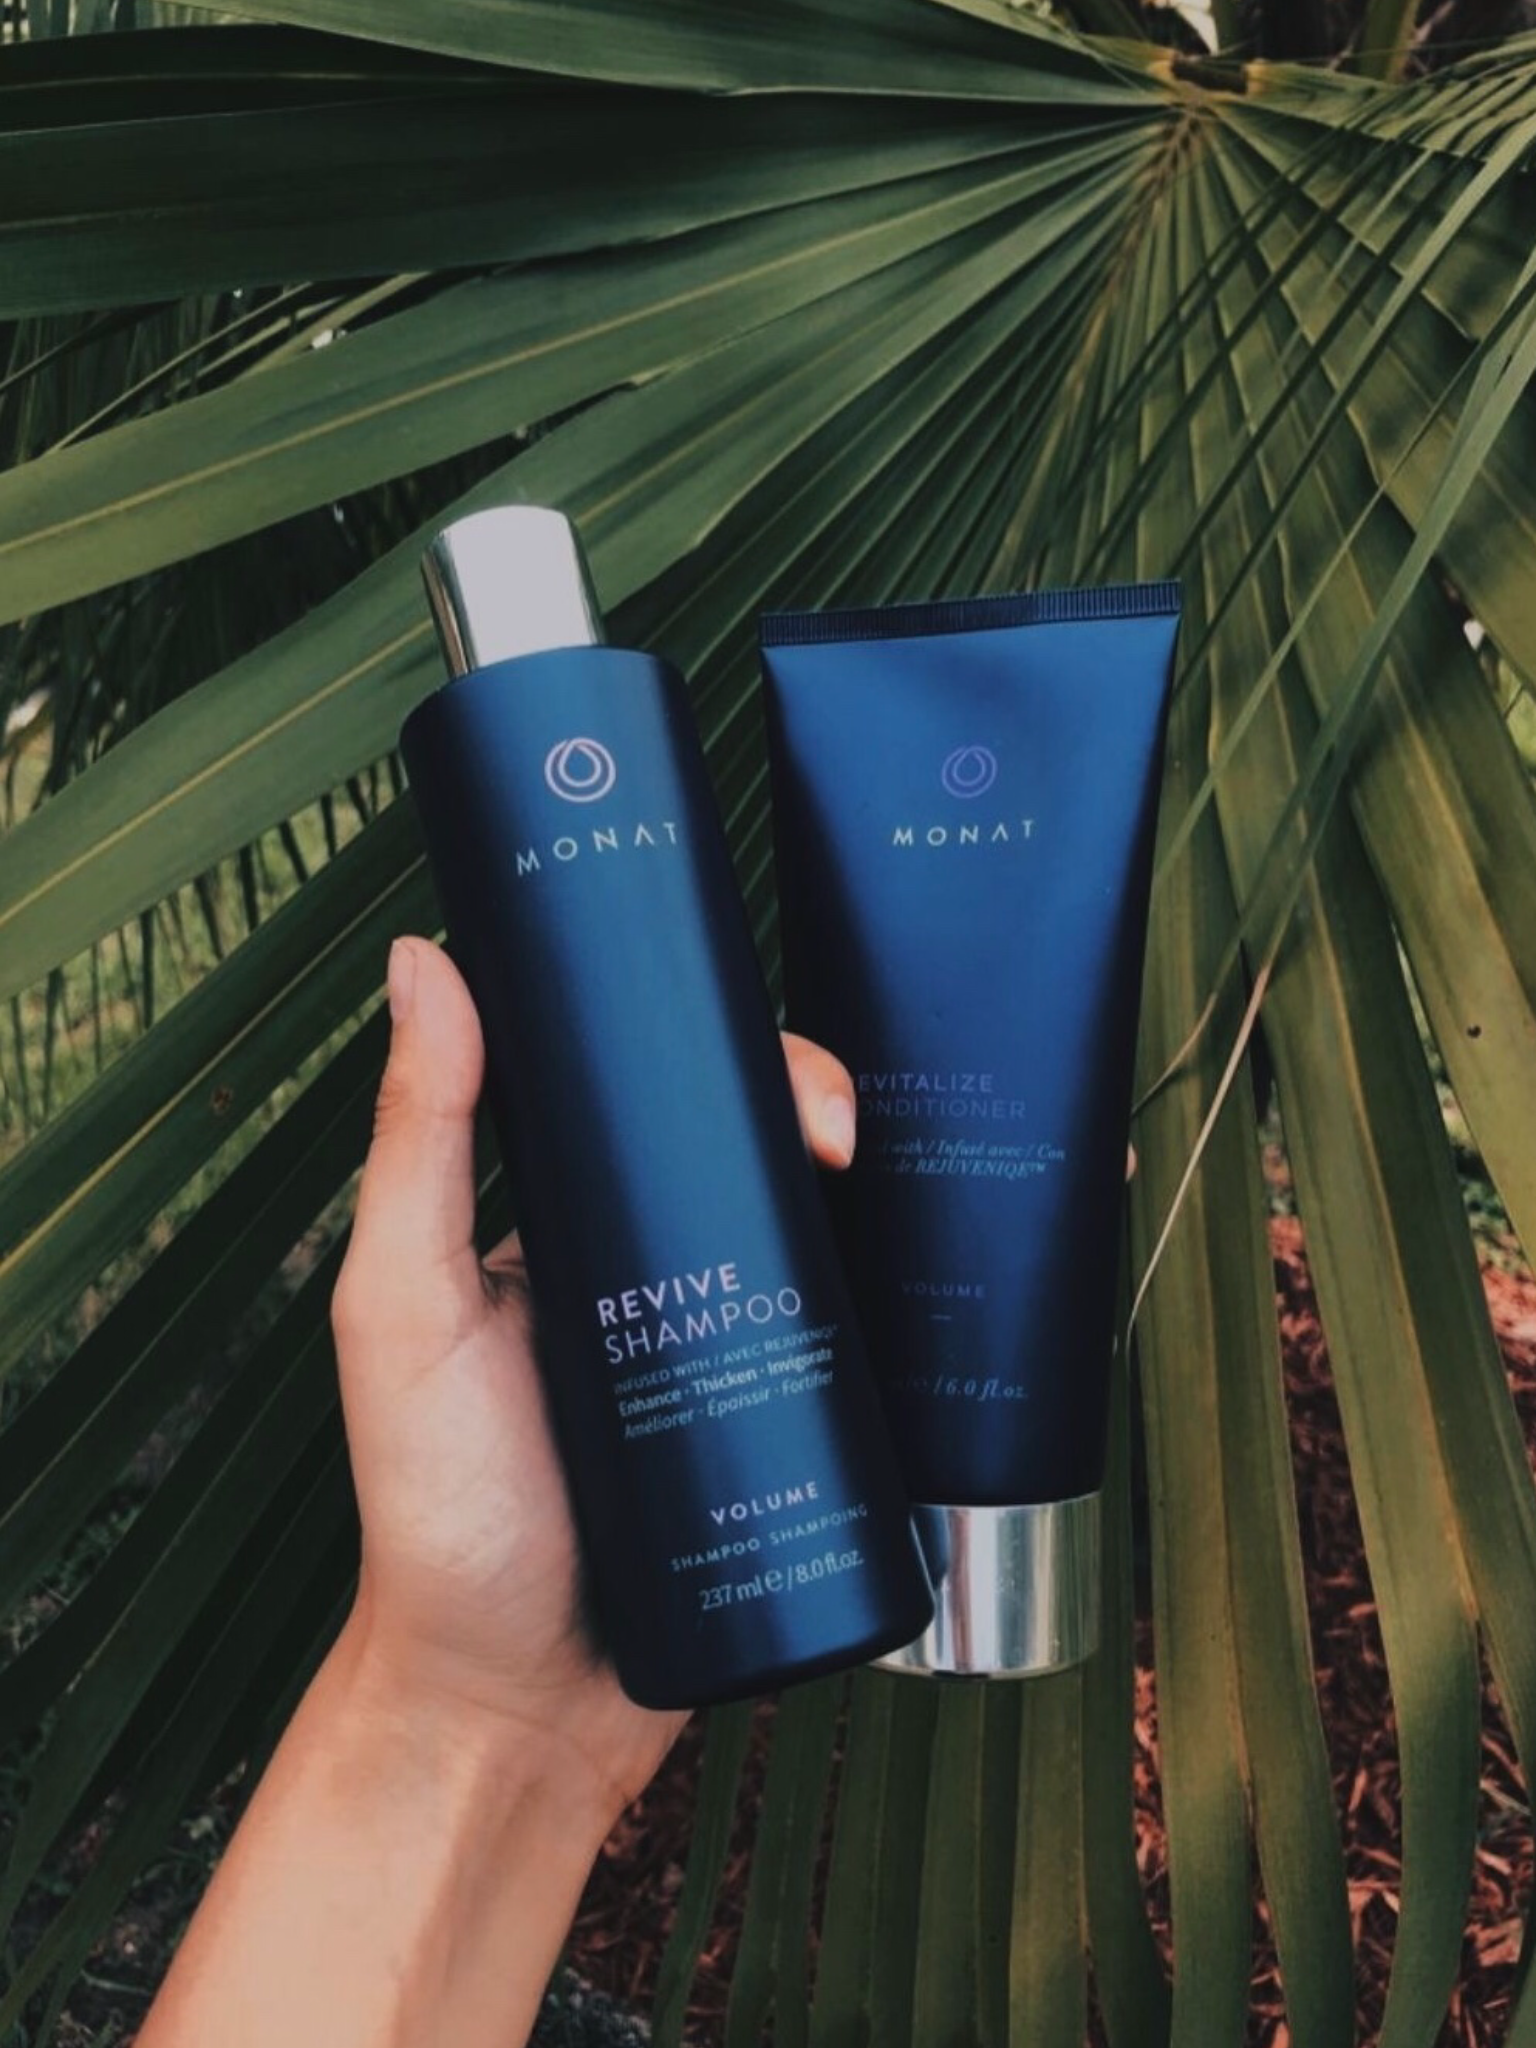 MONAT - Shampoo and conditioner